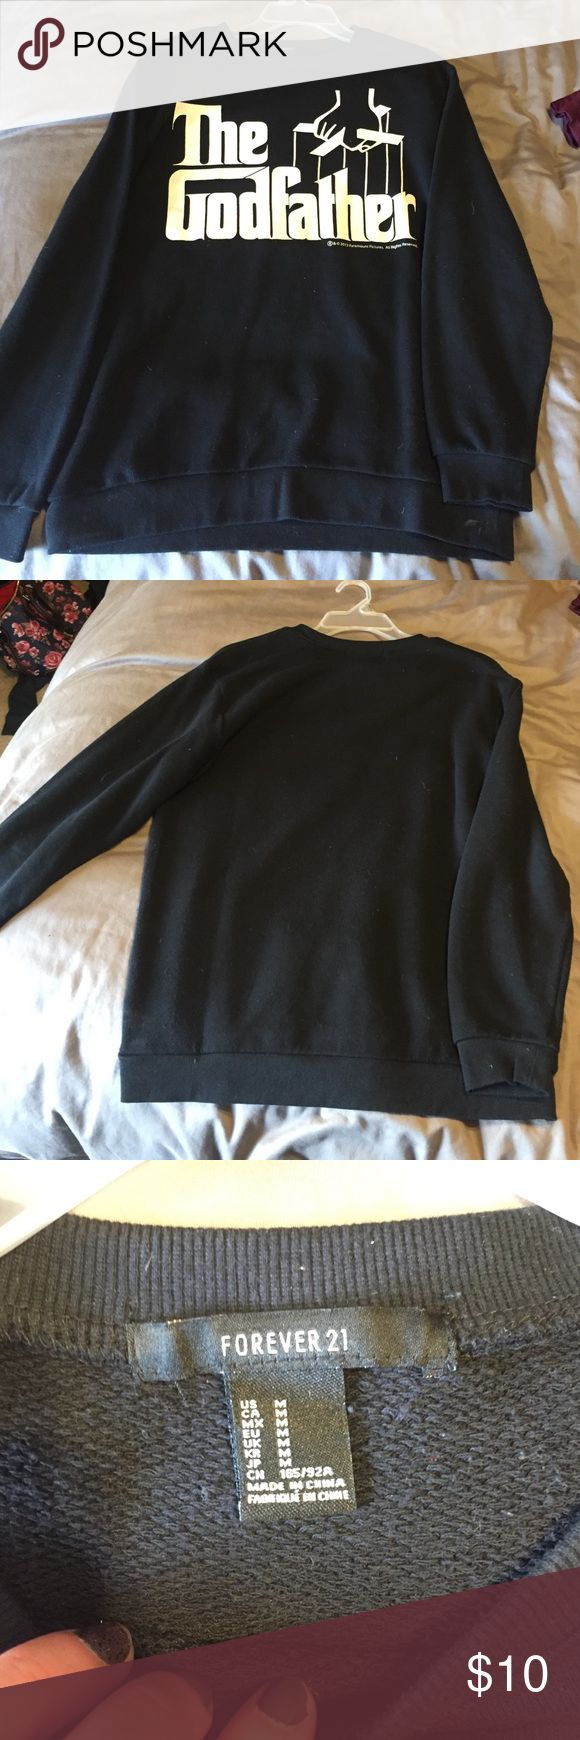 "Forever 21 crew neck sweater Black crew neck sweater with ""The Godfather"" logo on front. Forever 21 Sweaters Crew & Scoop Necks"